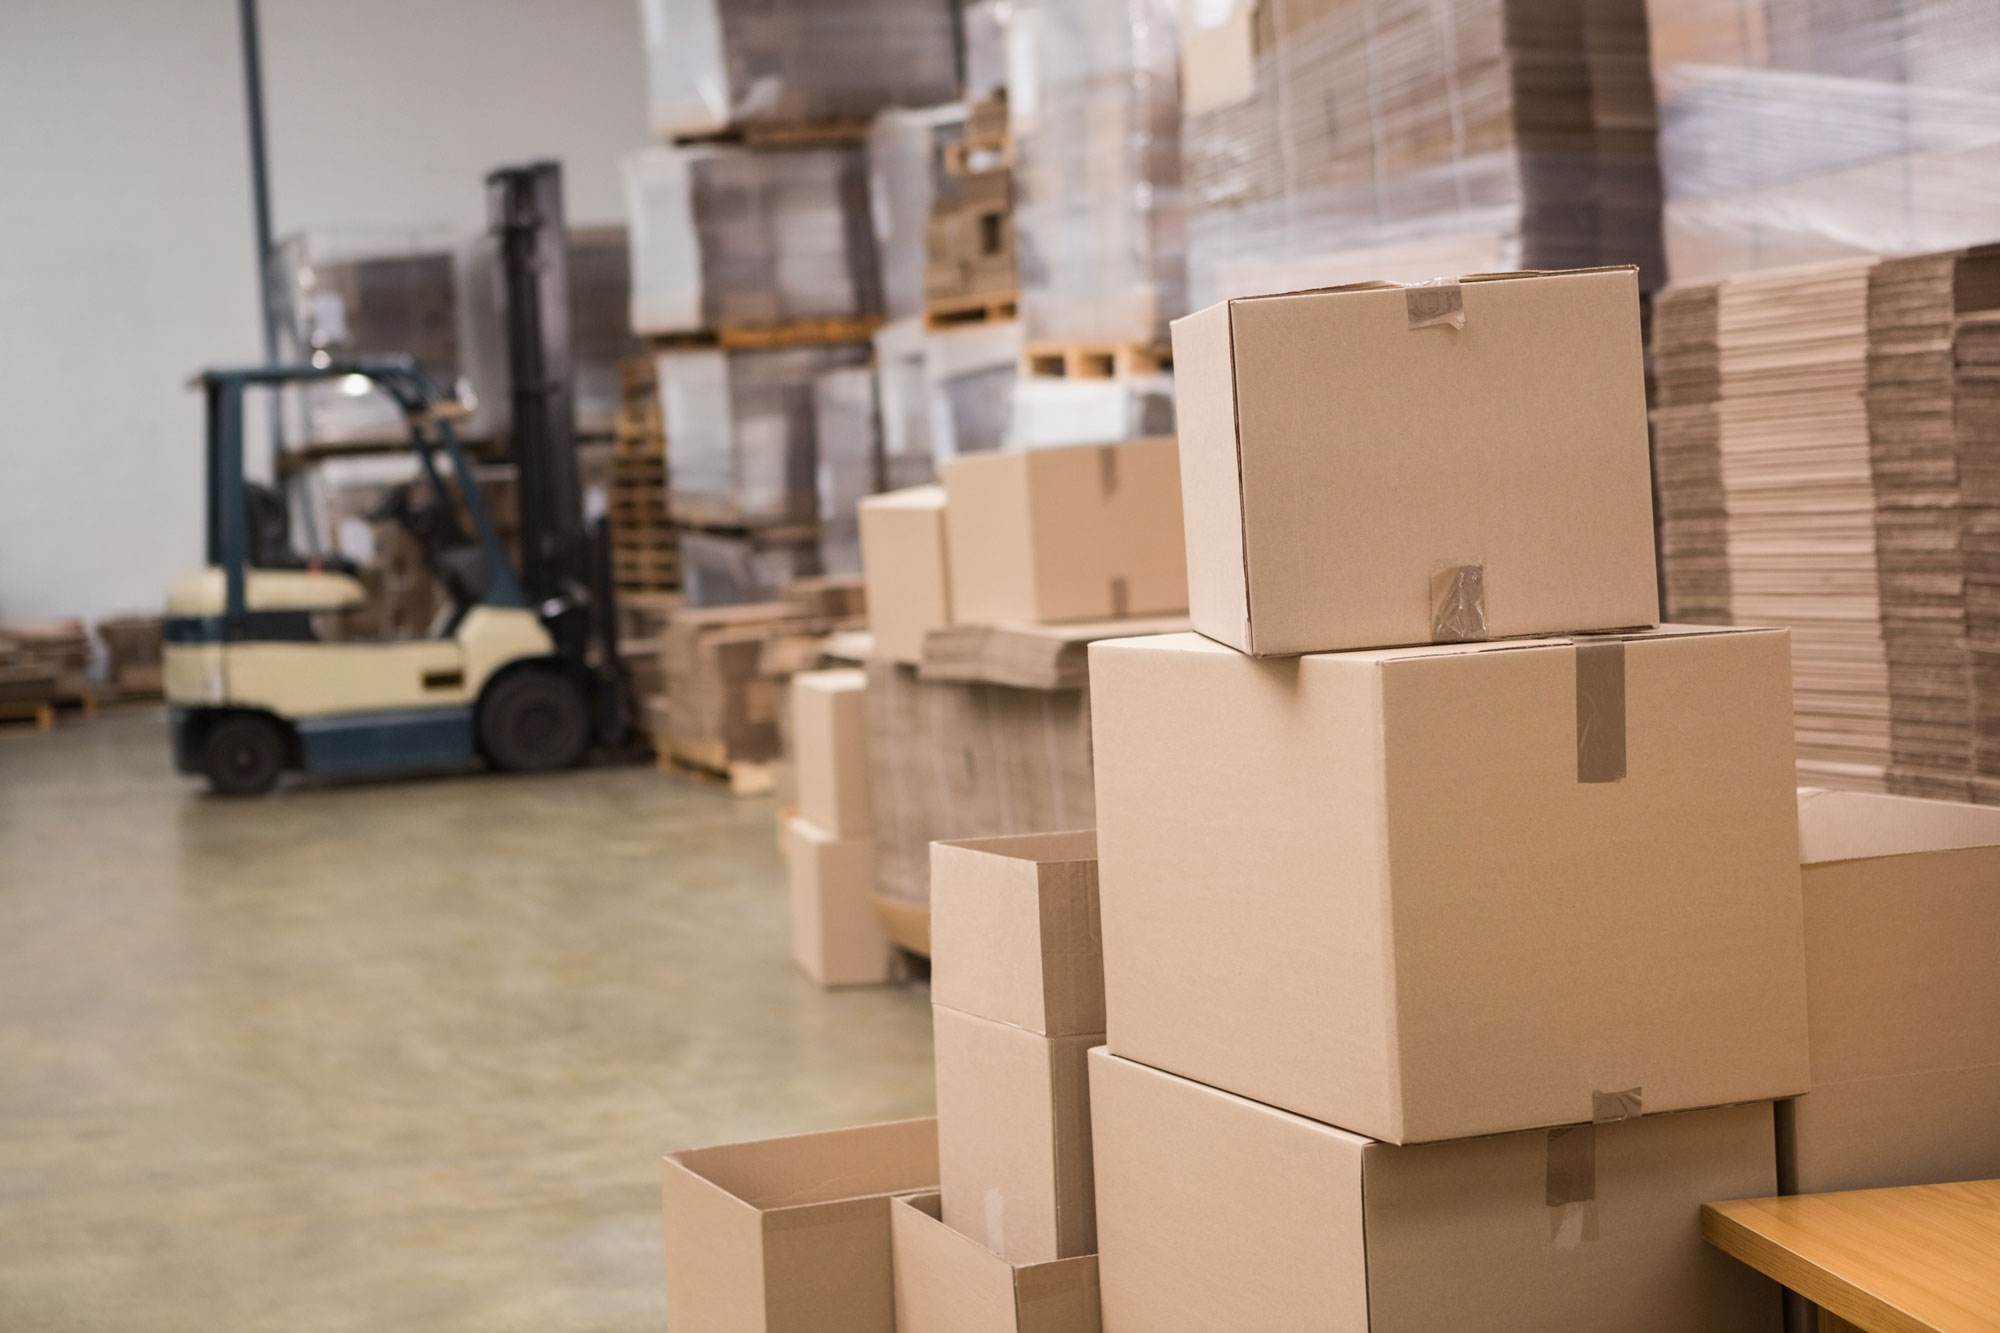 Boxes in a warehouse being moved by a forklift truck